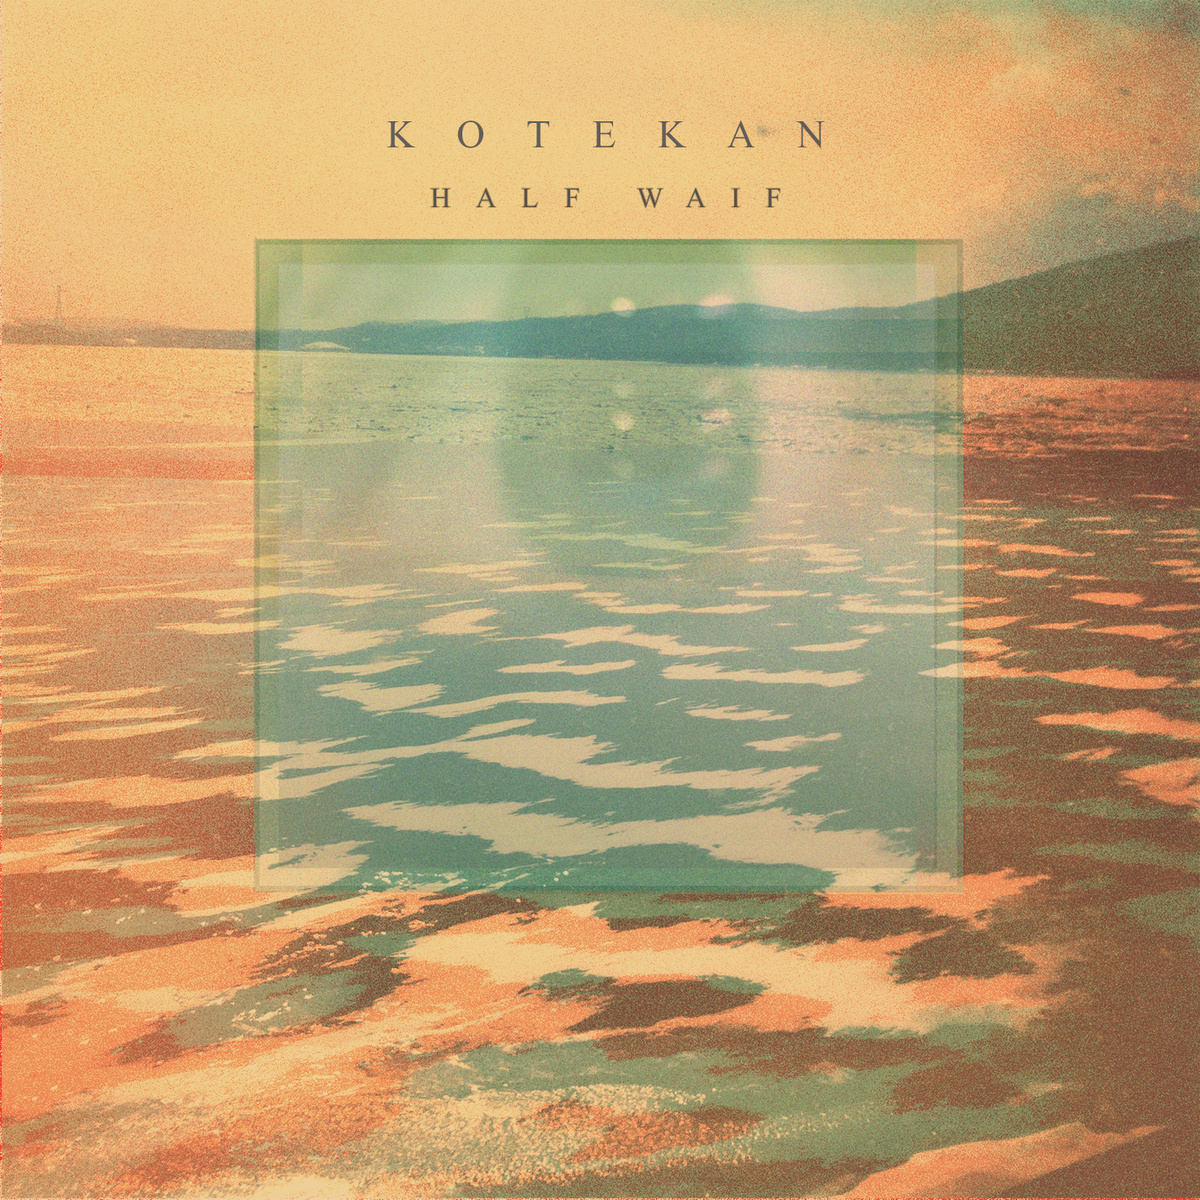 A Minefield You Marvel At: Half Waif Offers Beautiful Global Pop on Kotekan